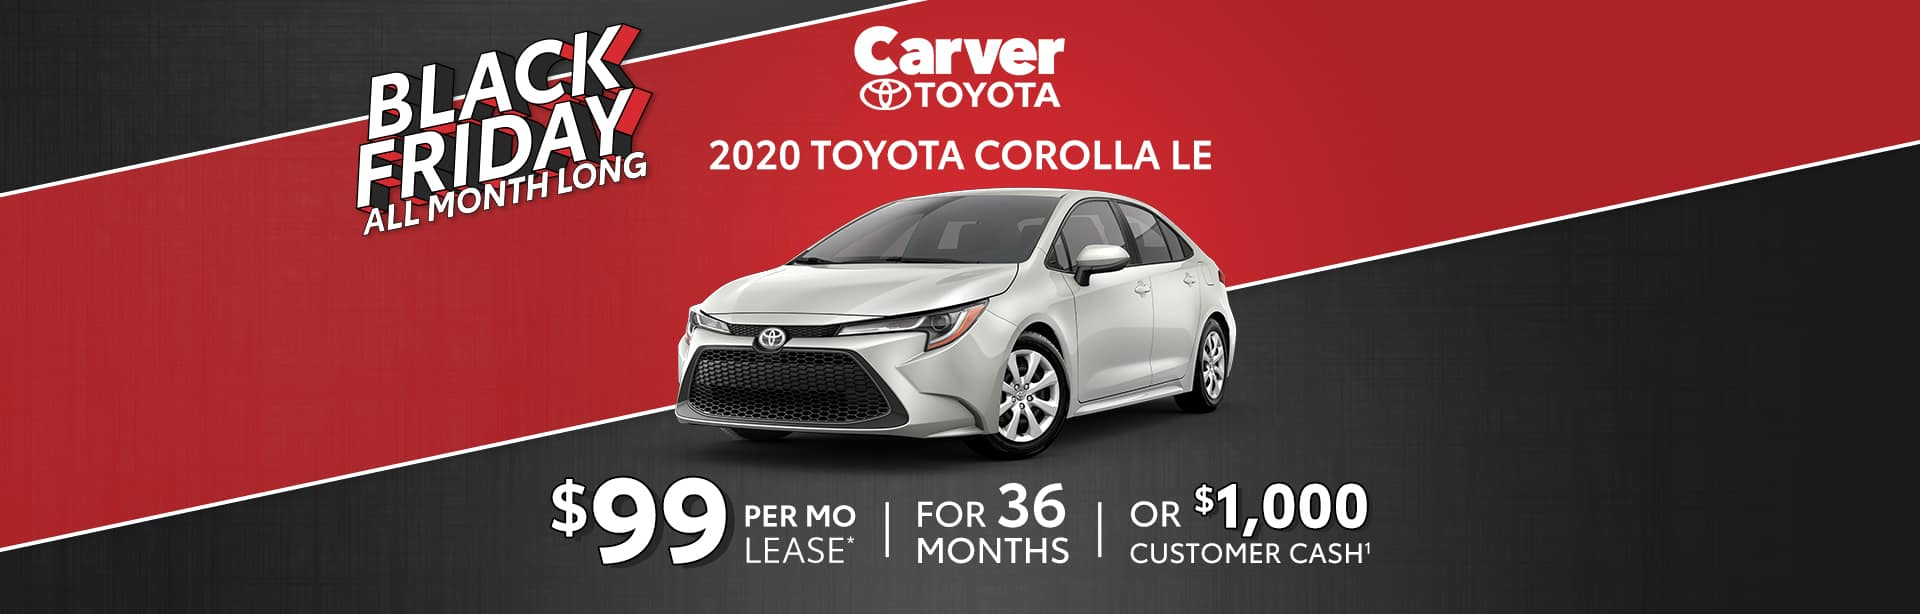 Toyota Corolla Lease Special near Greenwood, Indiana.